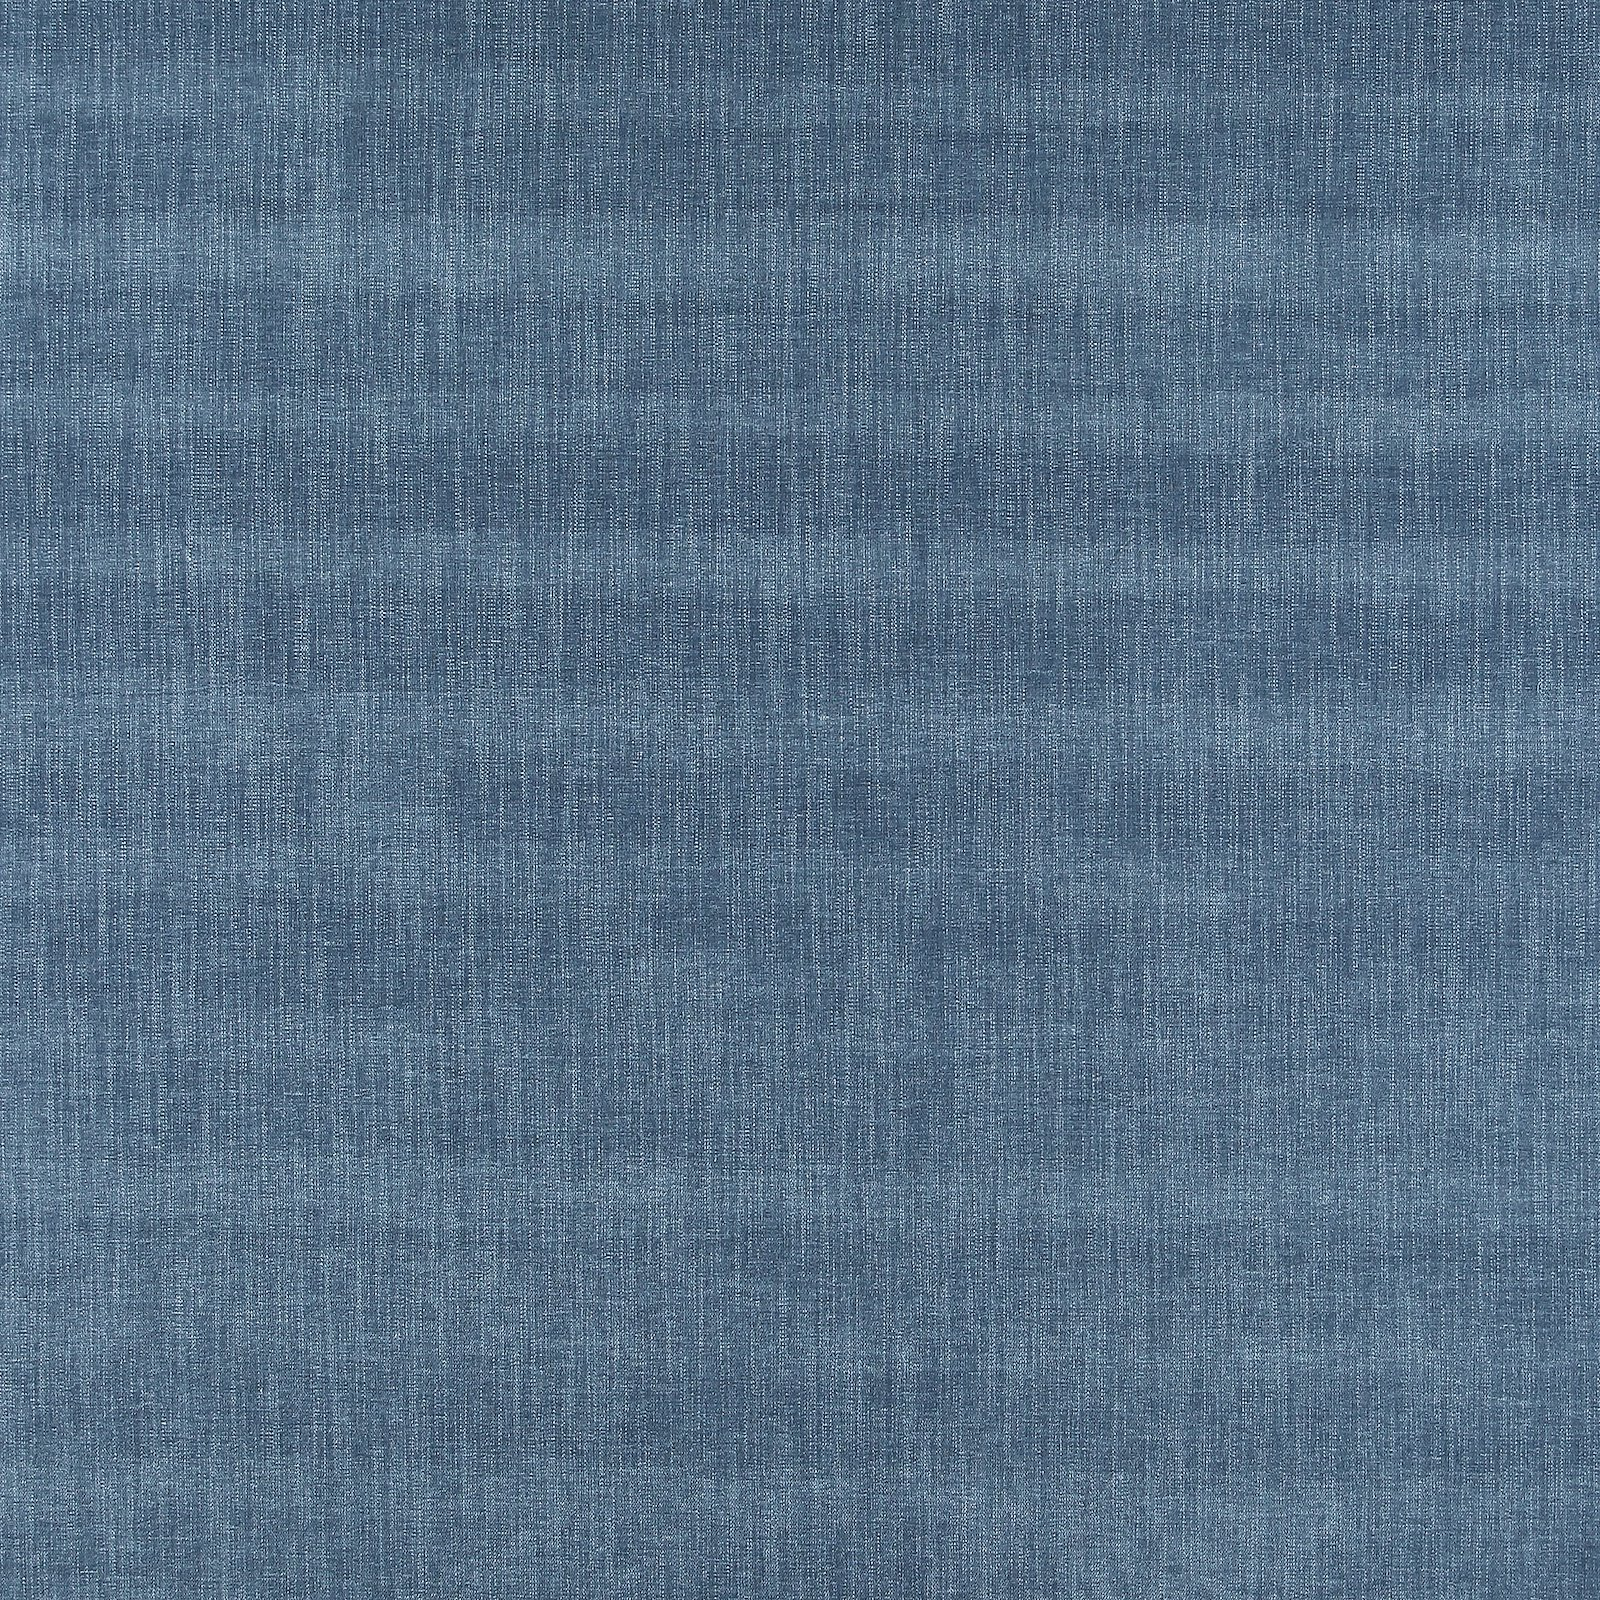 Upholstery chenille structure dusty blue 824160_pack_solid